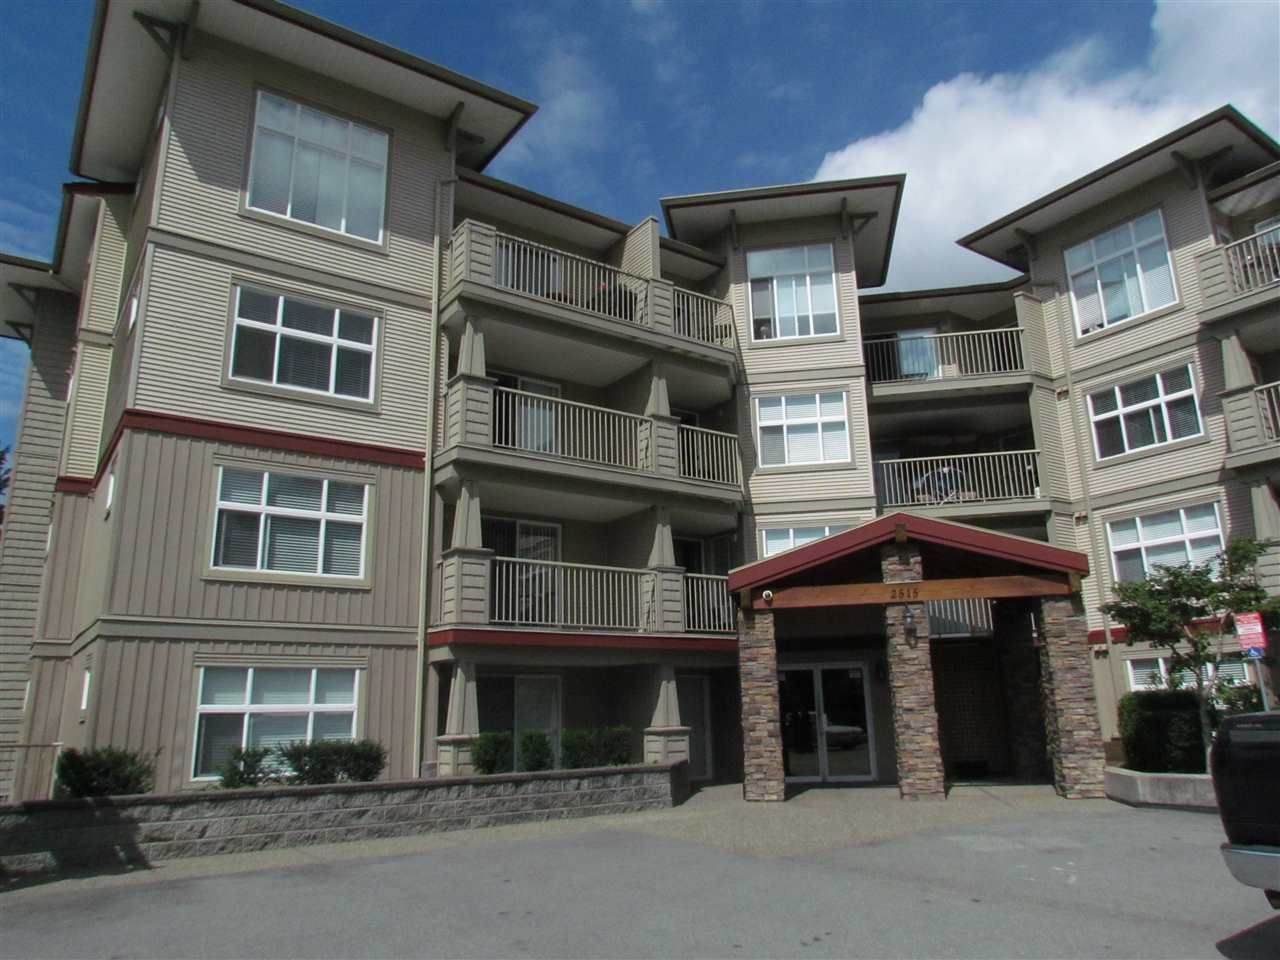 """Main Photo: 405 2515 PARK Drive in Abbotsford: Abbotsford East Condo for sale in """"VIVA ON PARK"""" : MLS®# R2463743"""